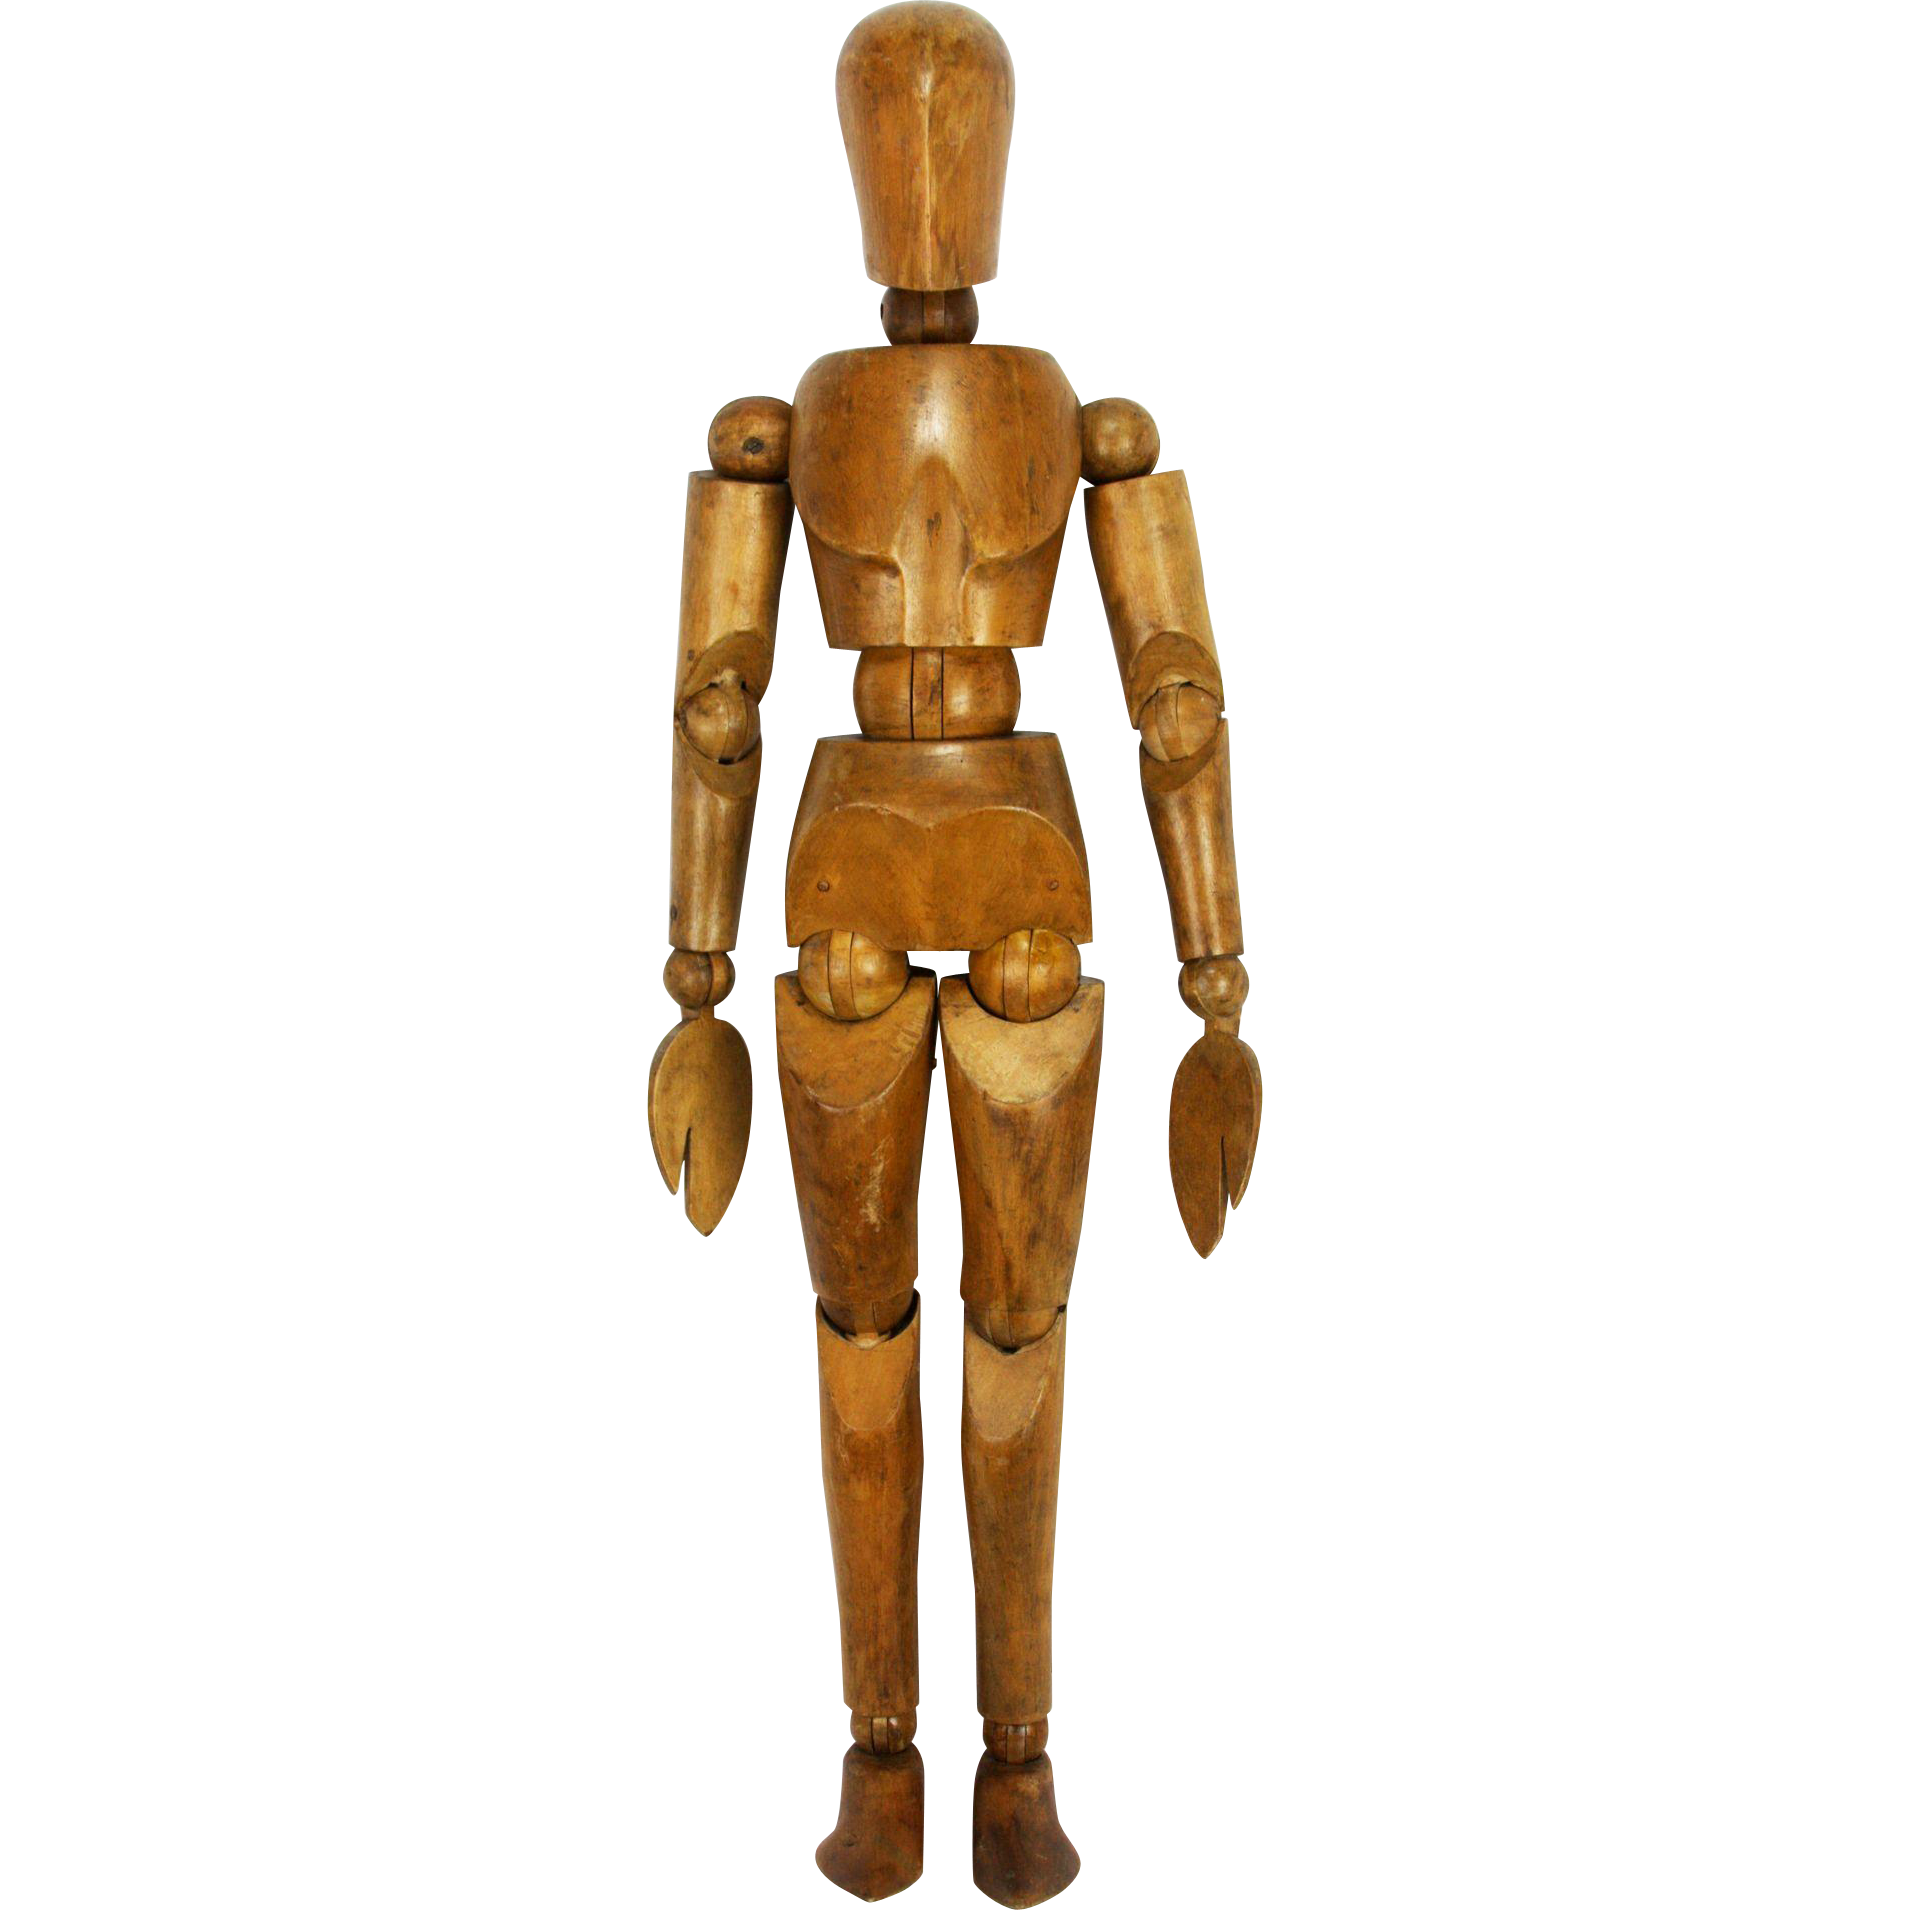 Clothing clipart mannequin. Vintage large rare wood